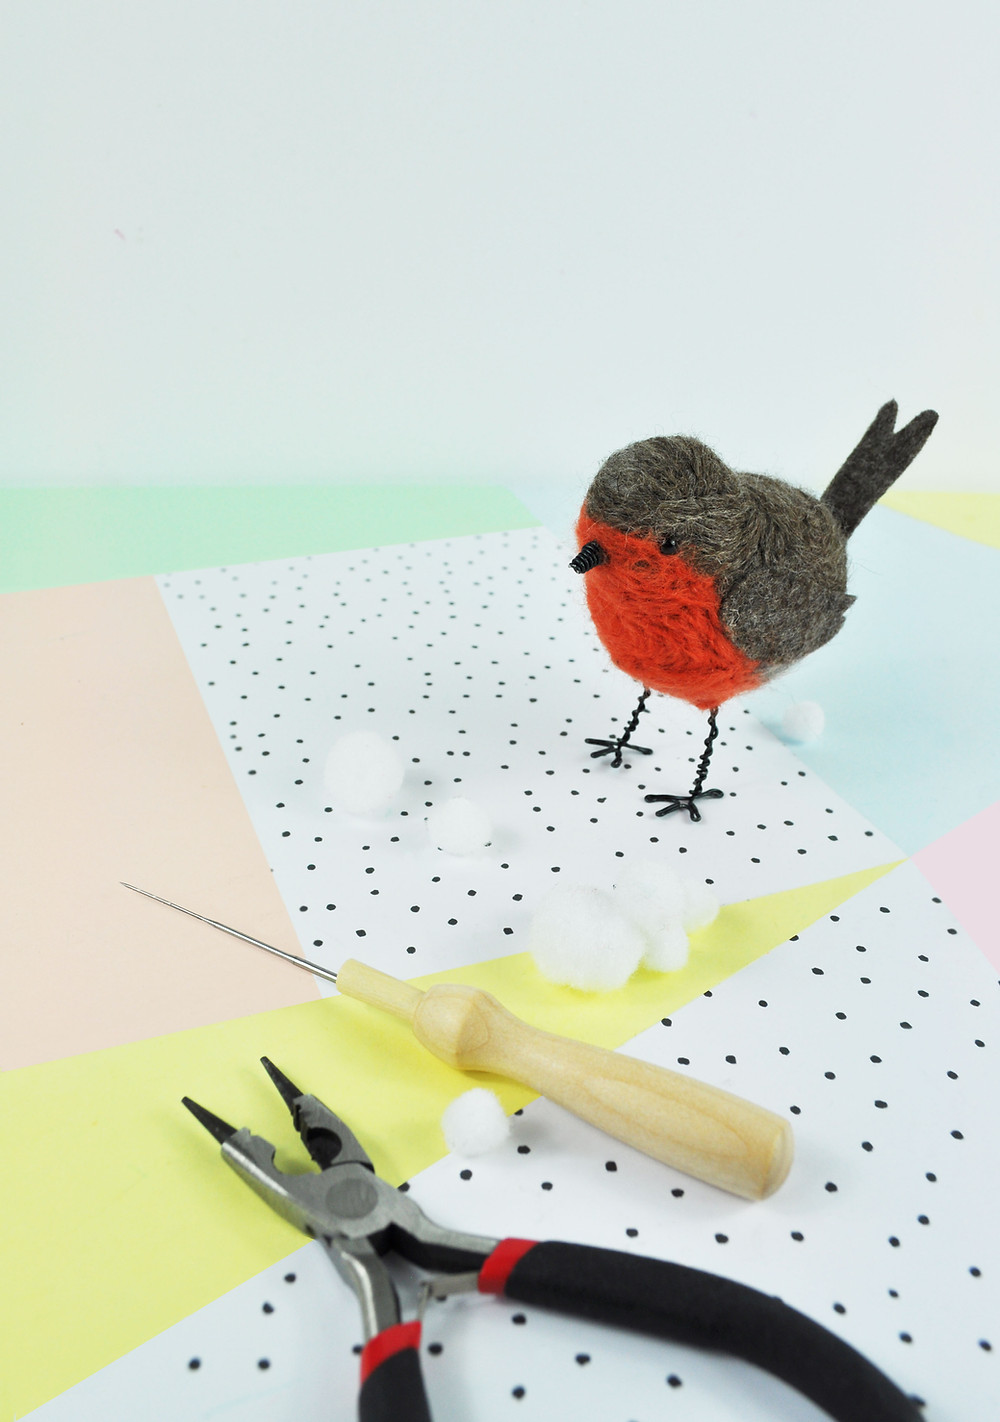 Needle Nelted Robin Craft Kit